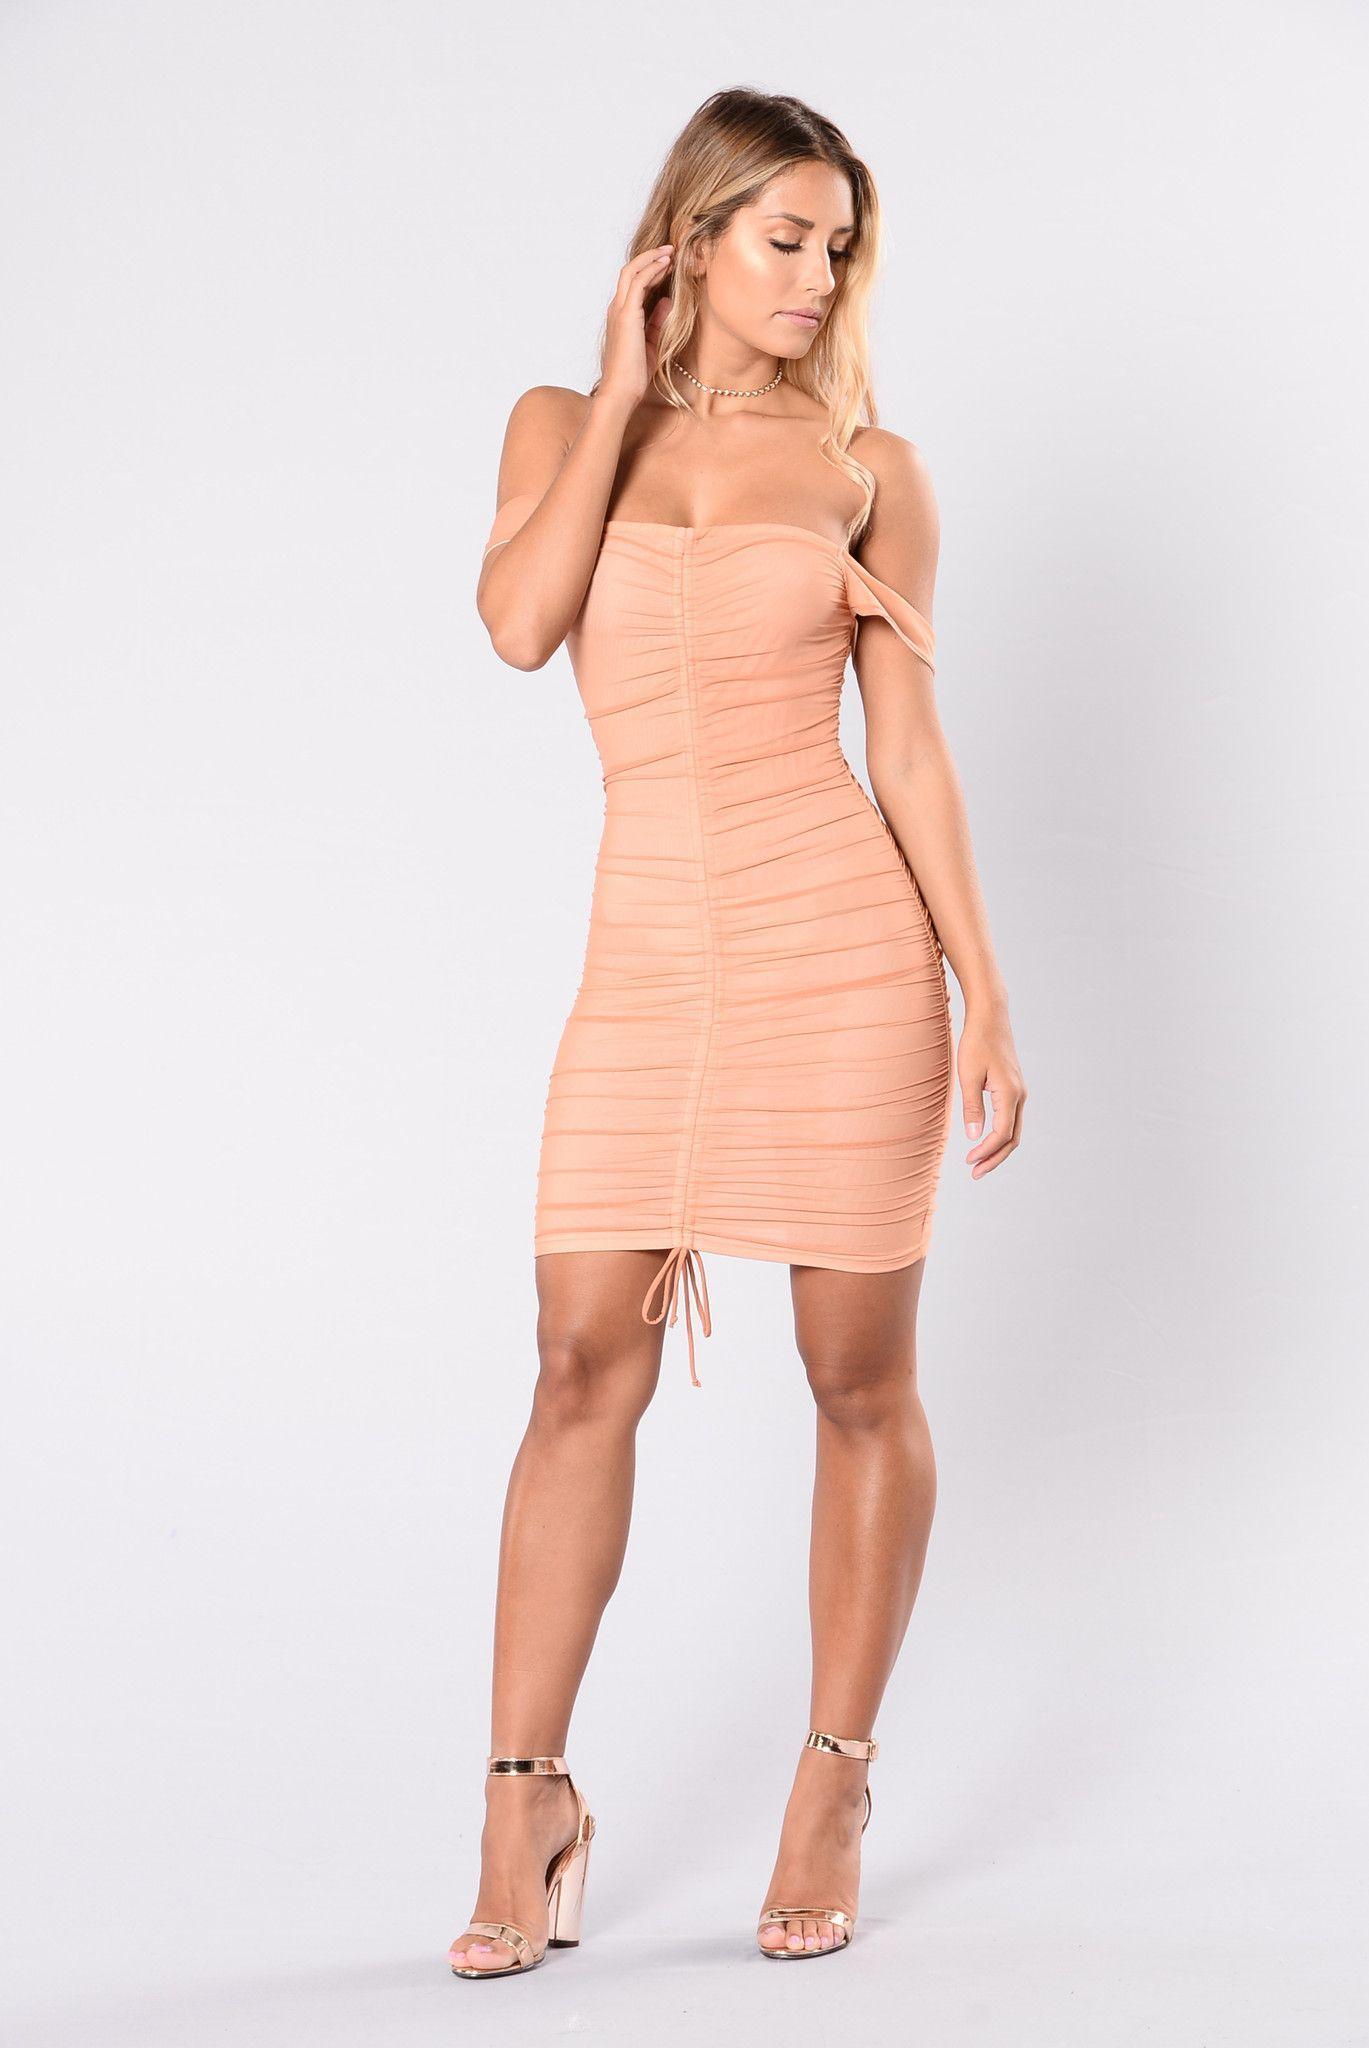 Tight Dress - Blush/Nude